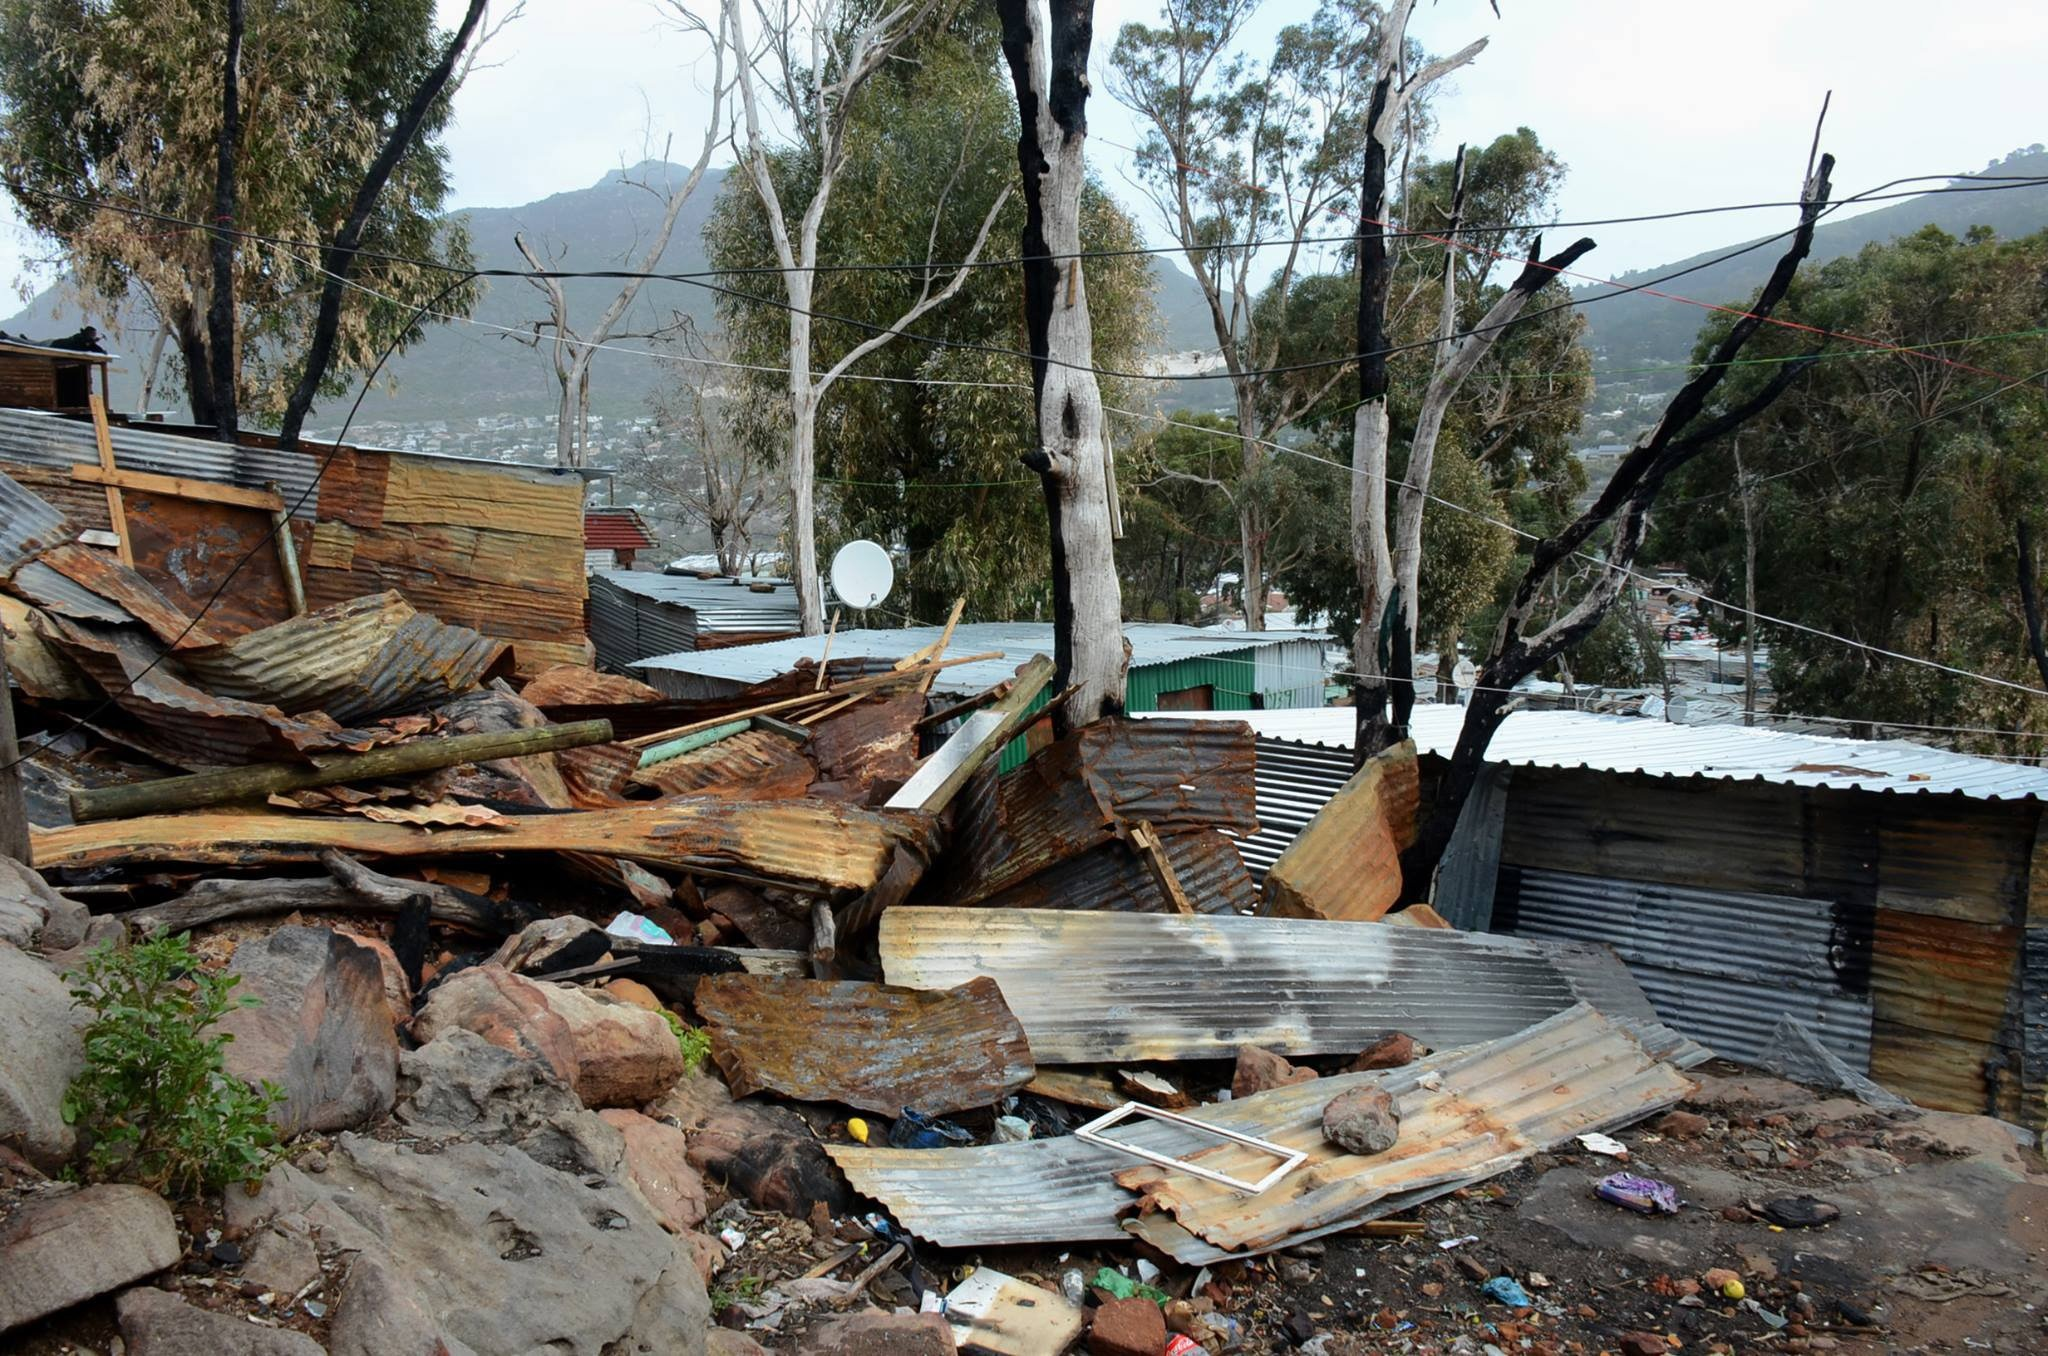 Hundreds of shacks were destroyed in Cape Town's recent storm. Climate change means that today's extreme weather will become the new norm.